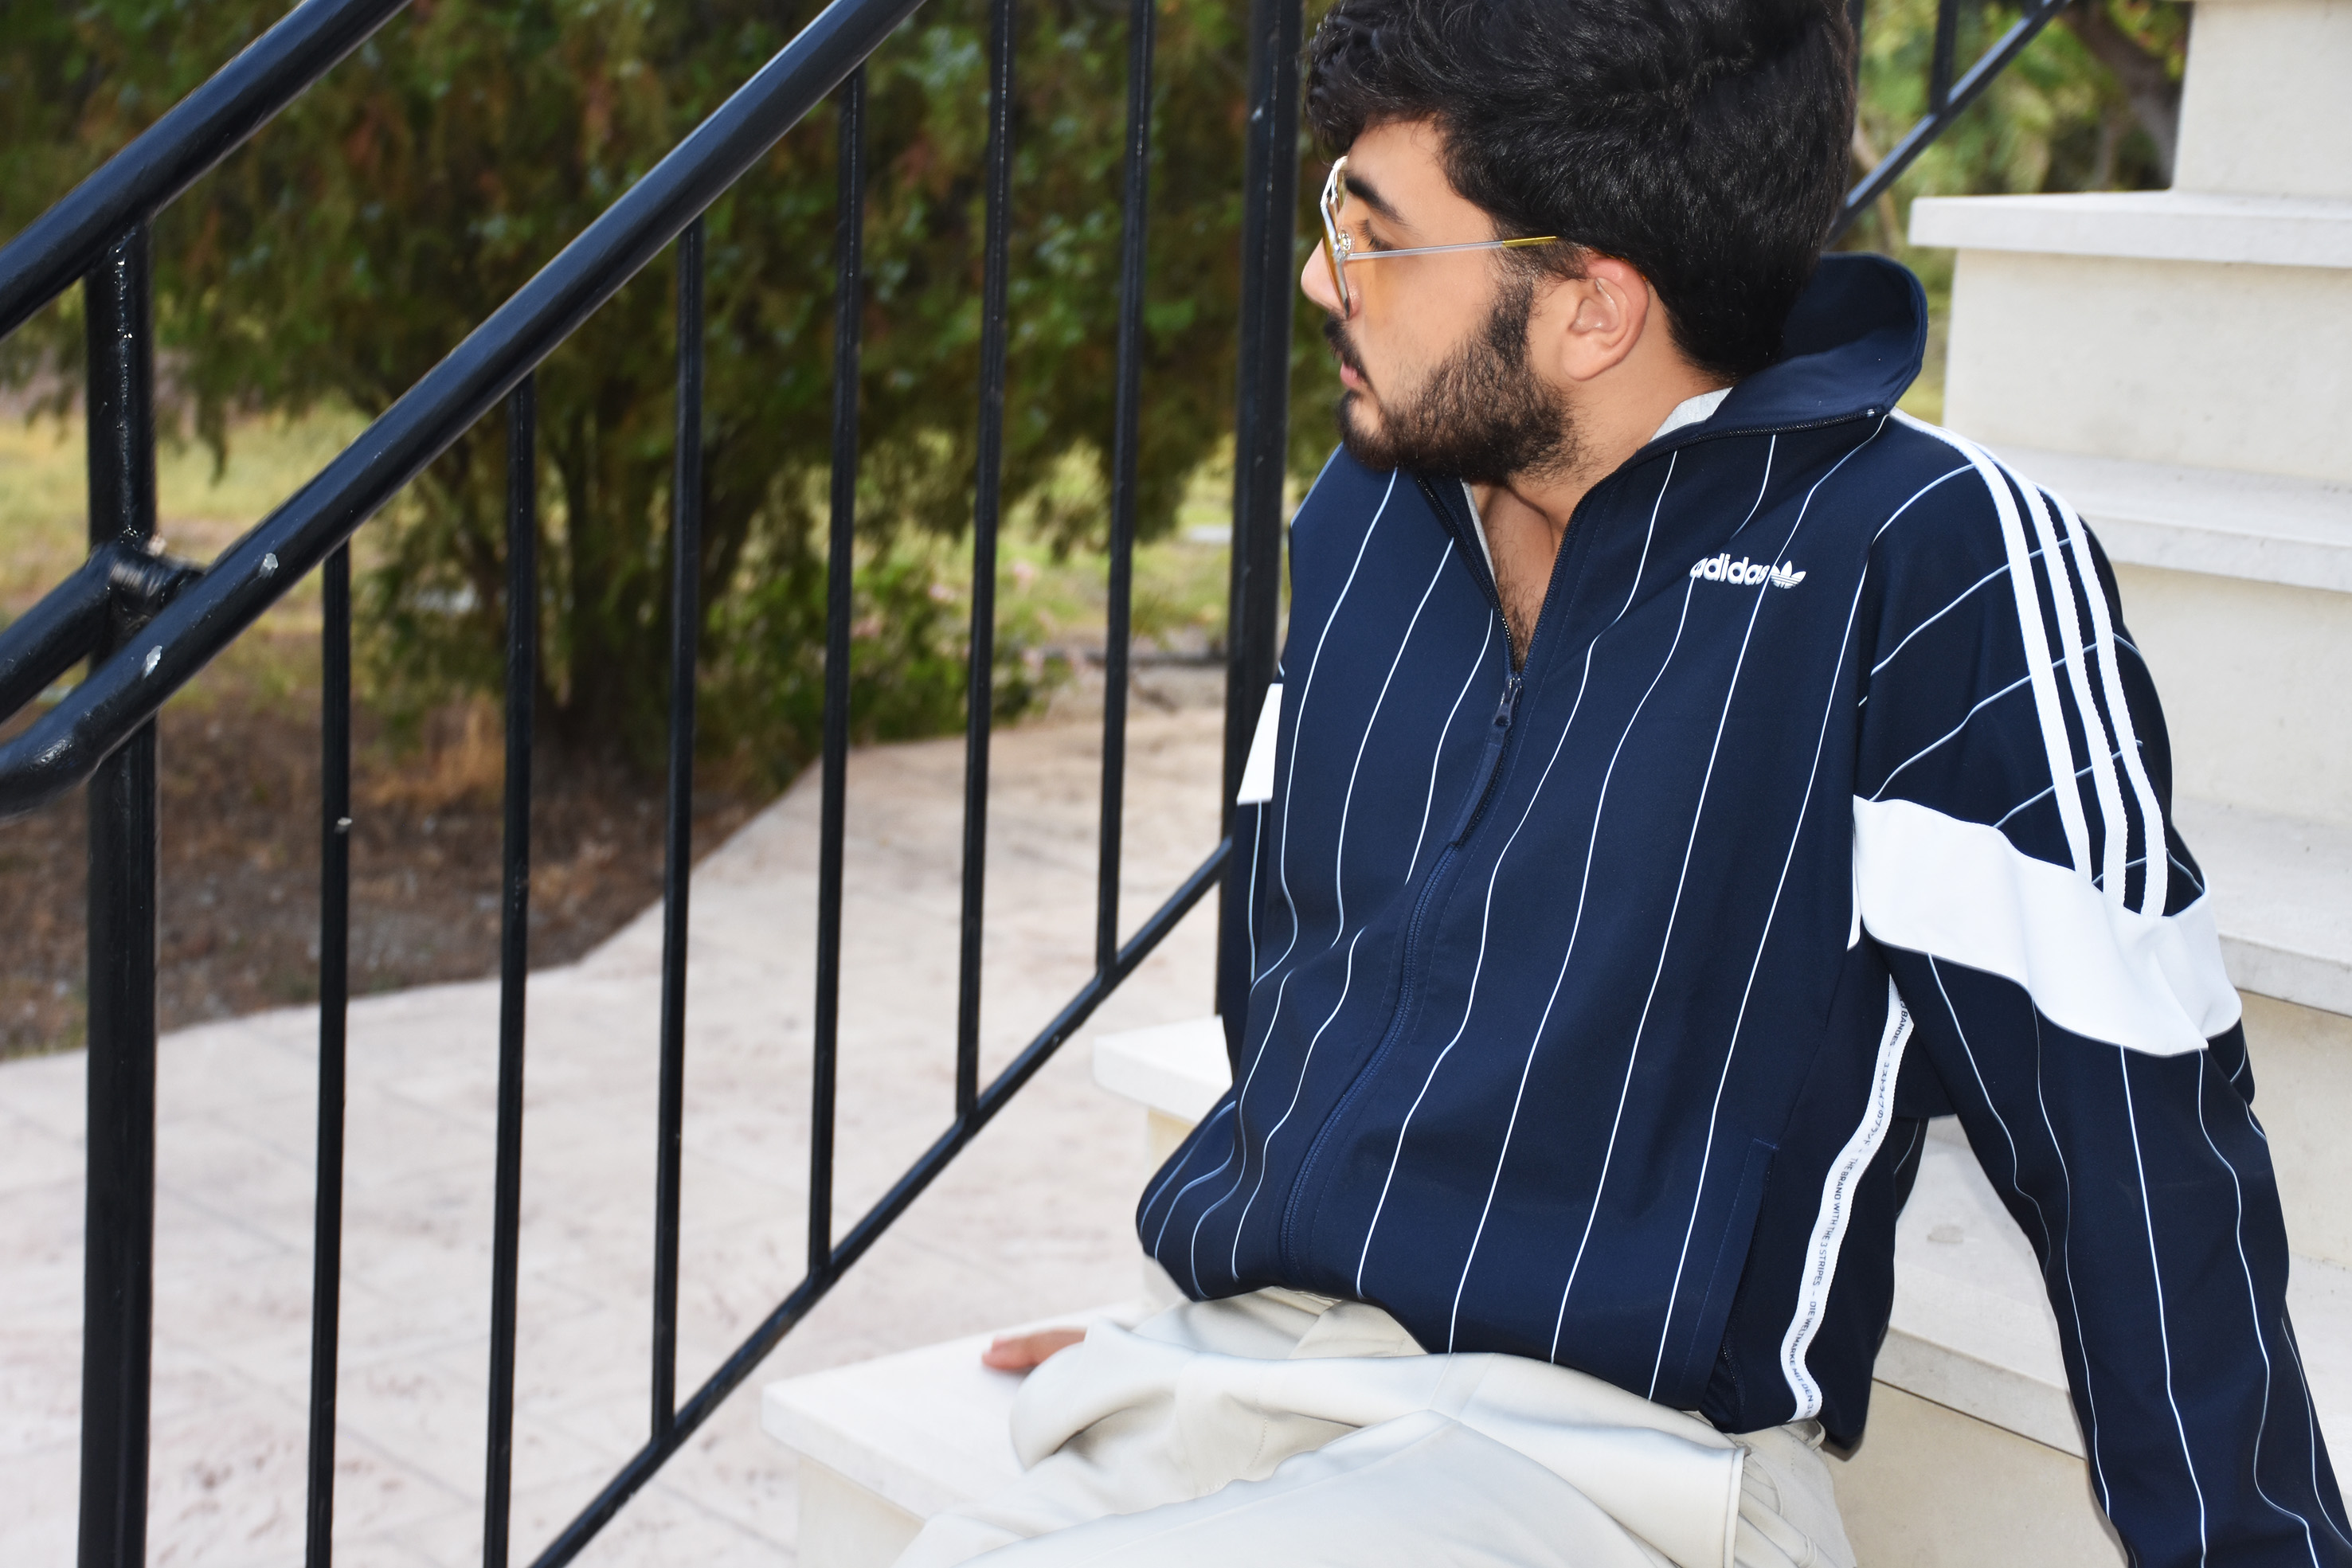 adidas stripes jacket for men outfit